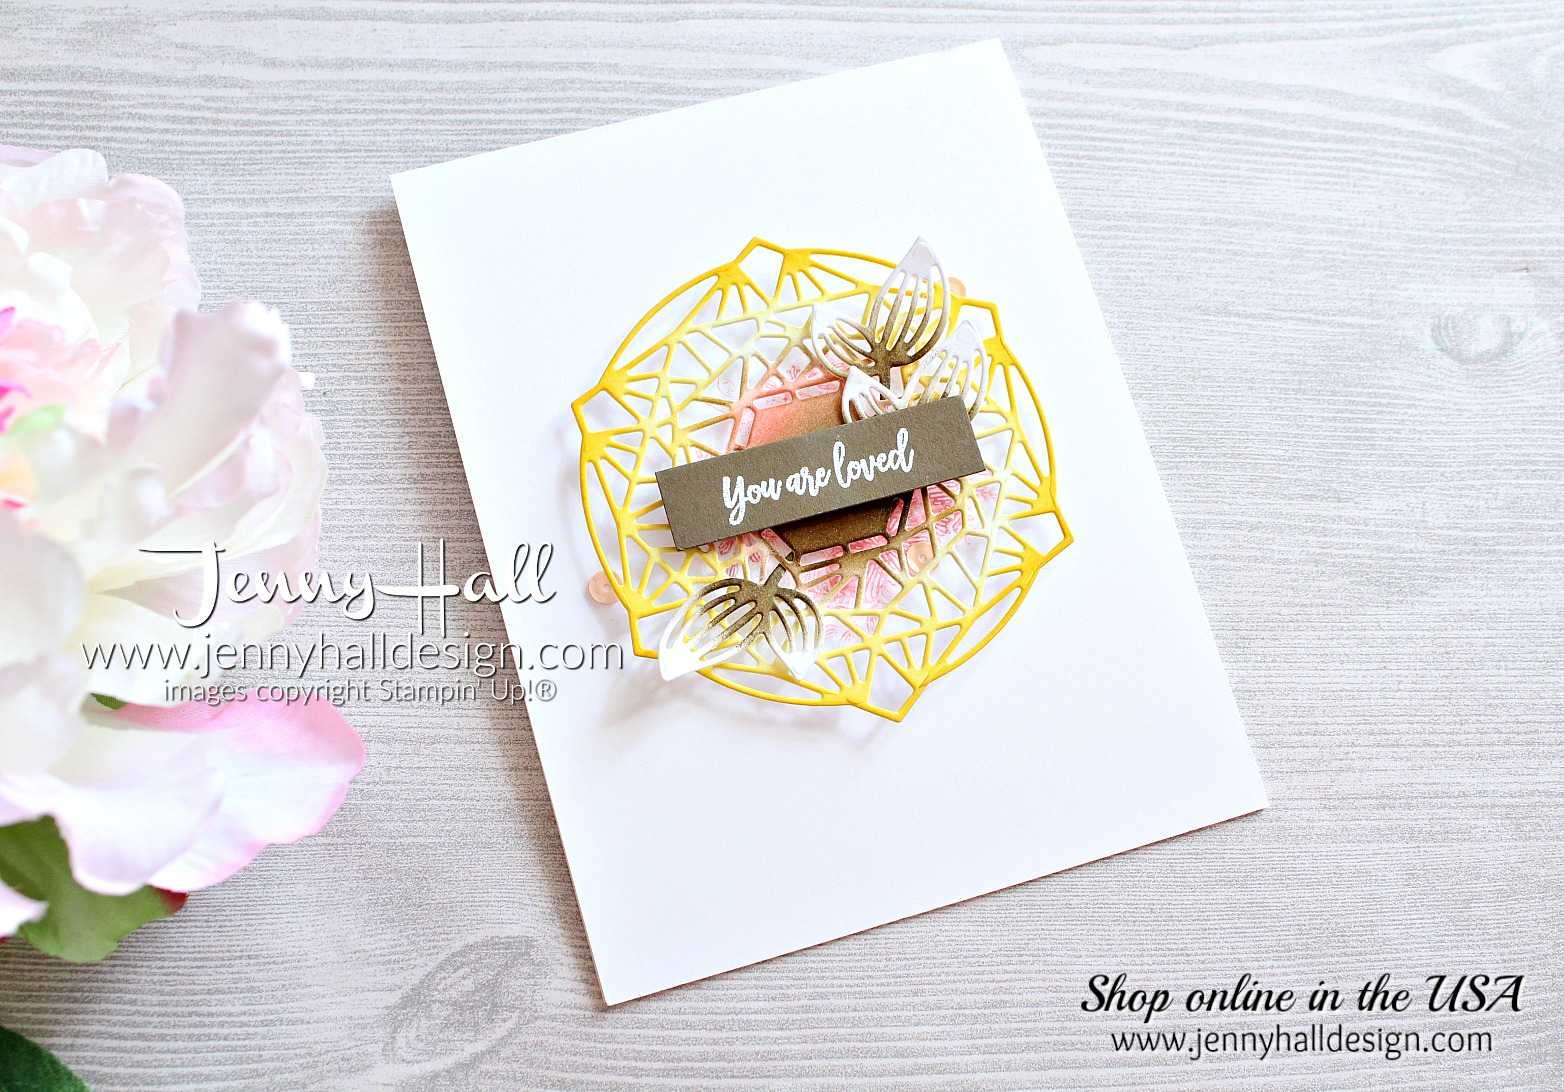 Beautiful Promenade created by Jenny Hall at www.jennyhalldesign.com for #cardmaking #handmadecard #stamping #stampinup #beautifulpromenade #beautifullayersthinlits #jennyhall #jennyhalldesign #jennystampsup #color #papercrafts #cascards #cleanandsimplecard #artsandcrafts #diy #fallcolor #lifestyle #maker